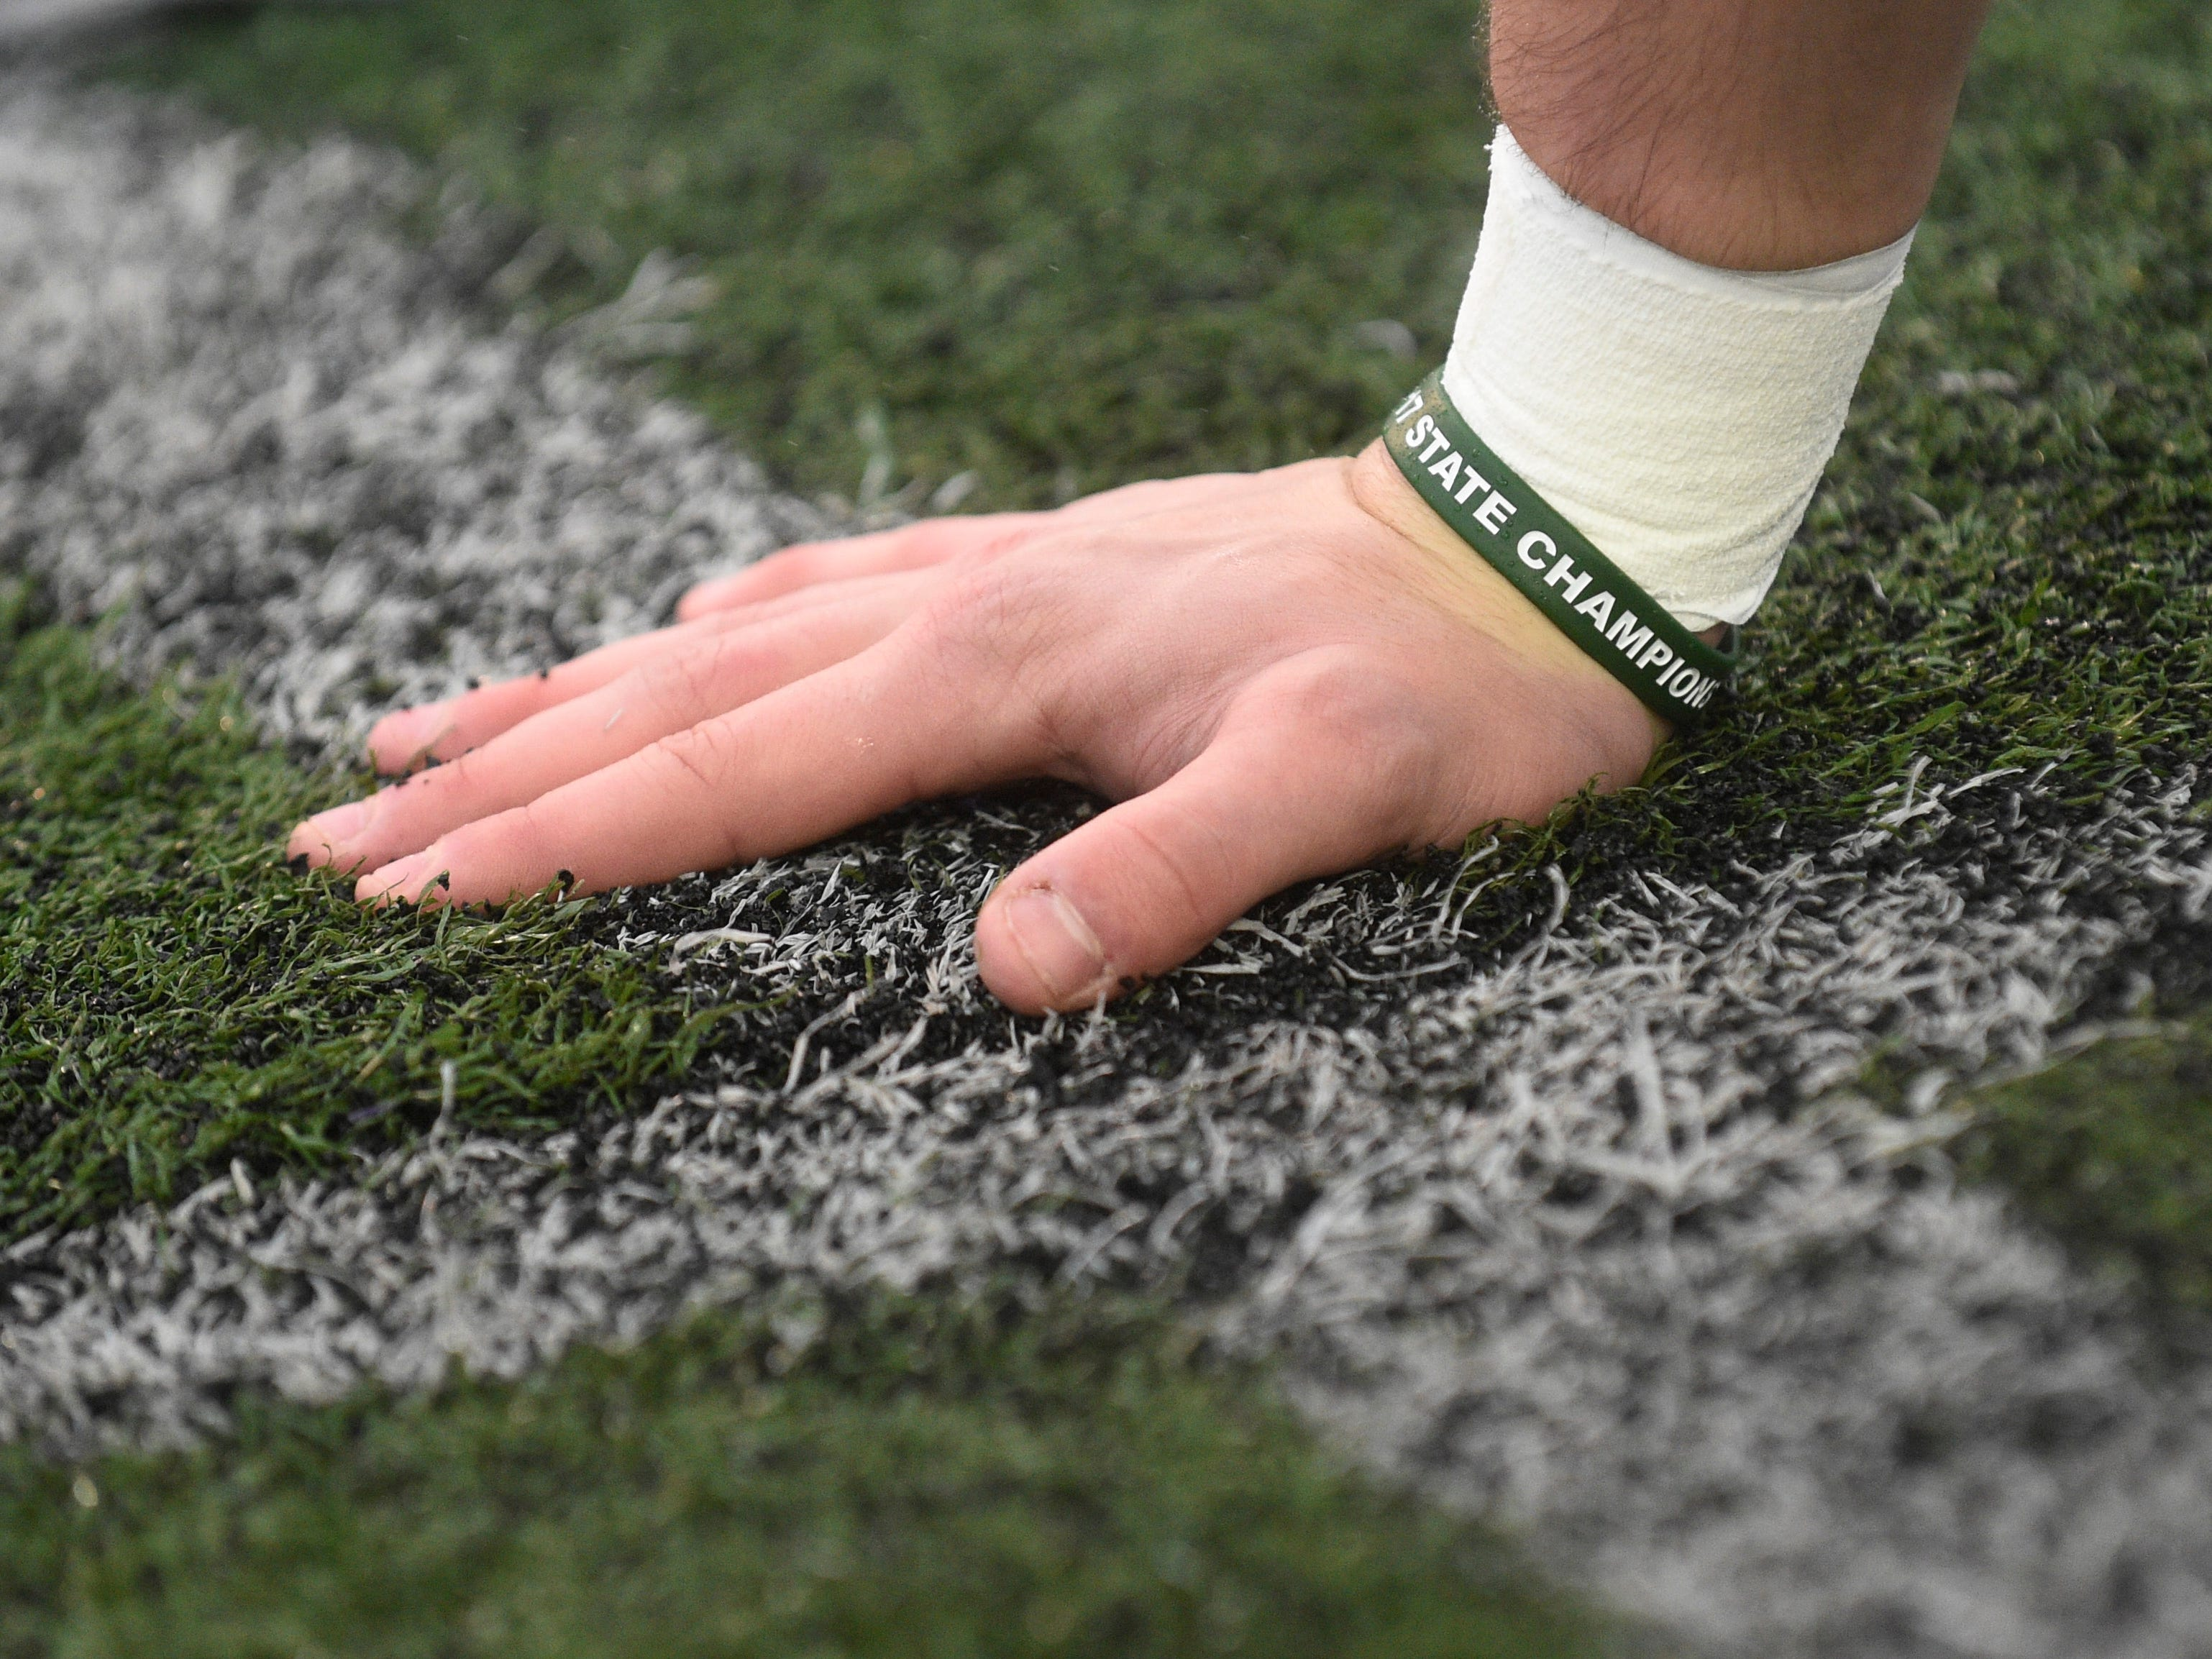 A Greeneville player wears a championship bracelet from 2017 before the Class 4A BlueCross Bowl state championship at Tennessee Tech's Tucker Stadium in Cookeville, Tenn., on Thursday, Nov. 29, 2018.